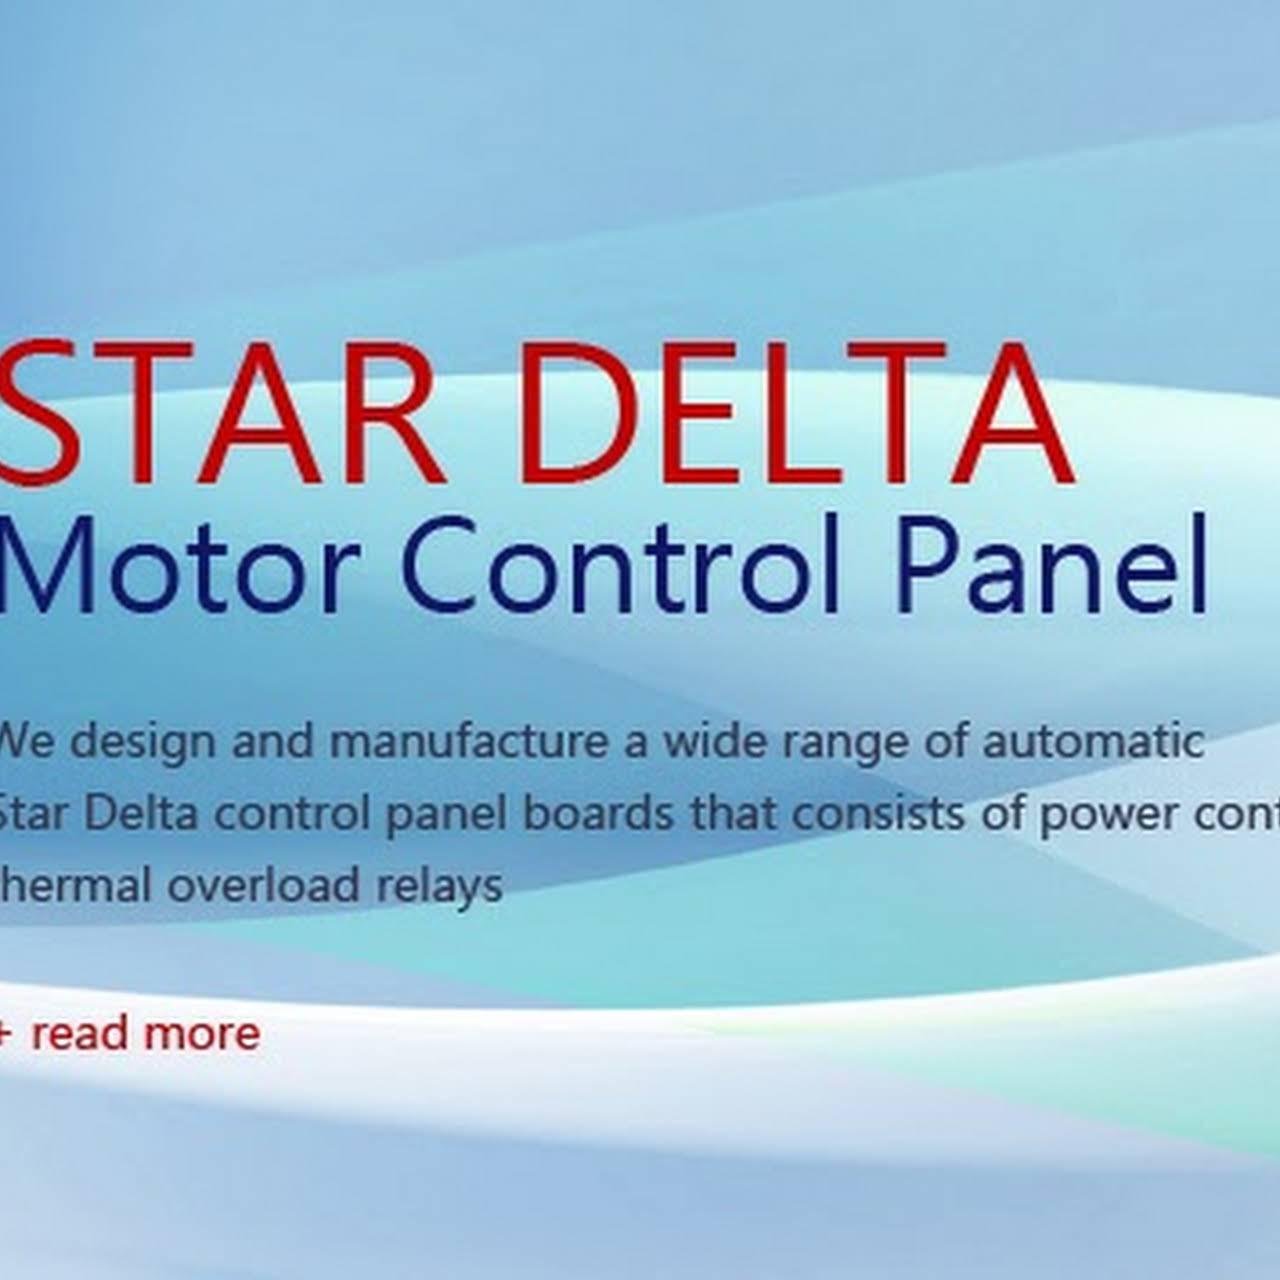 Star Delta Motor Control Panel - Electrical Equipment Supplier in ...